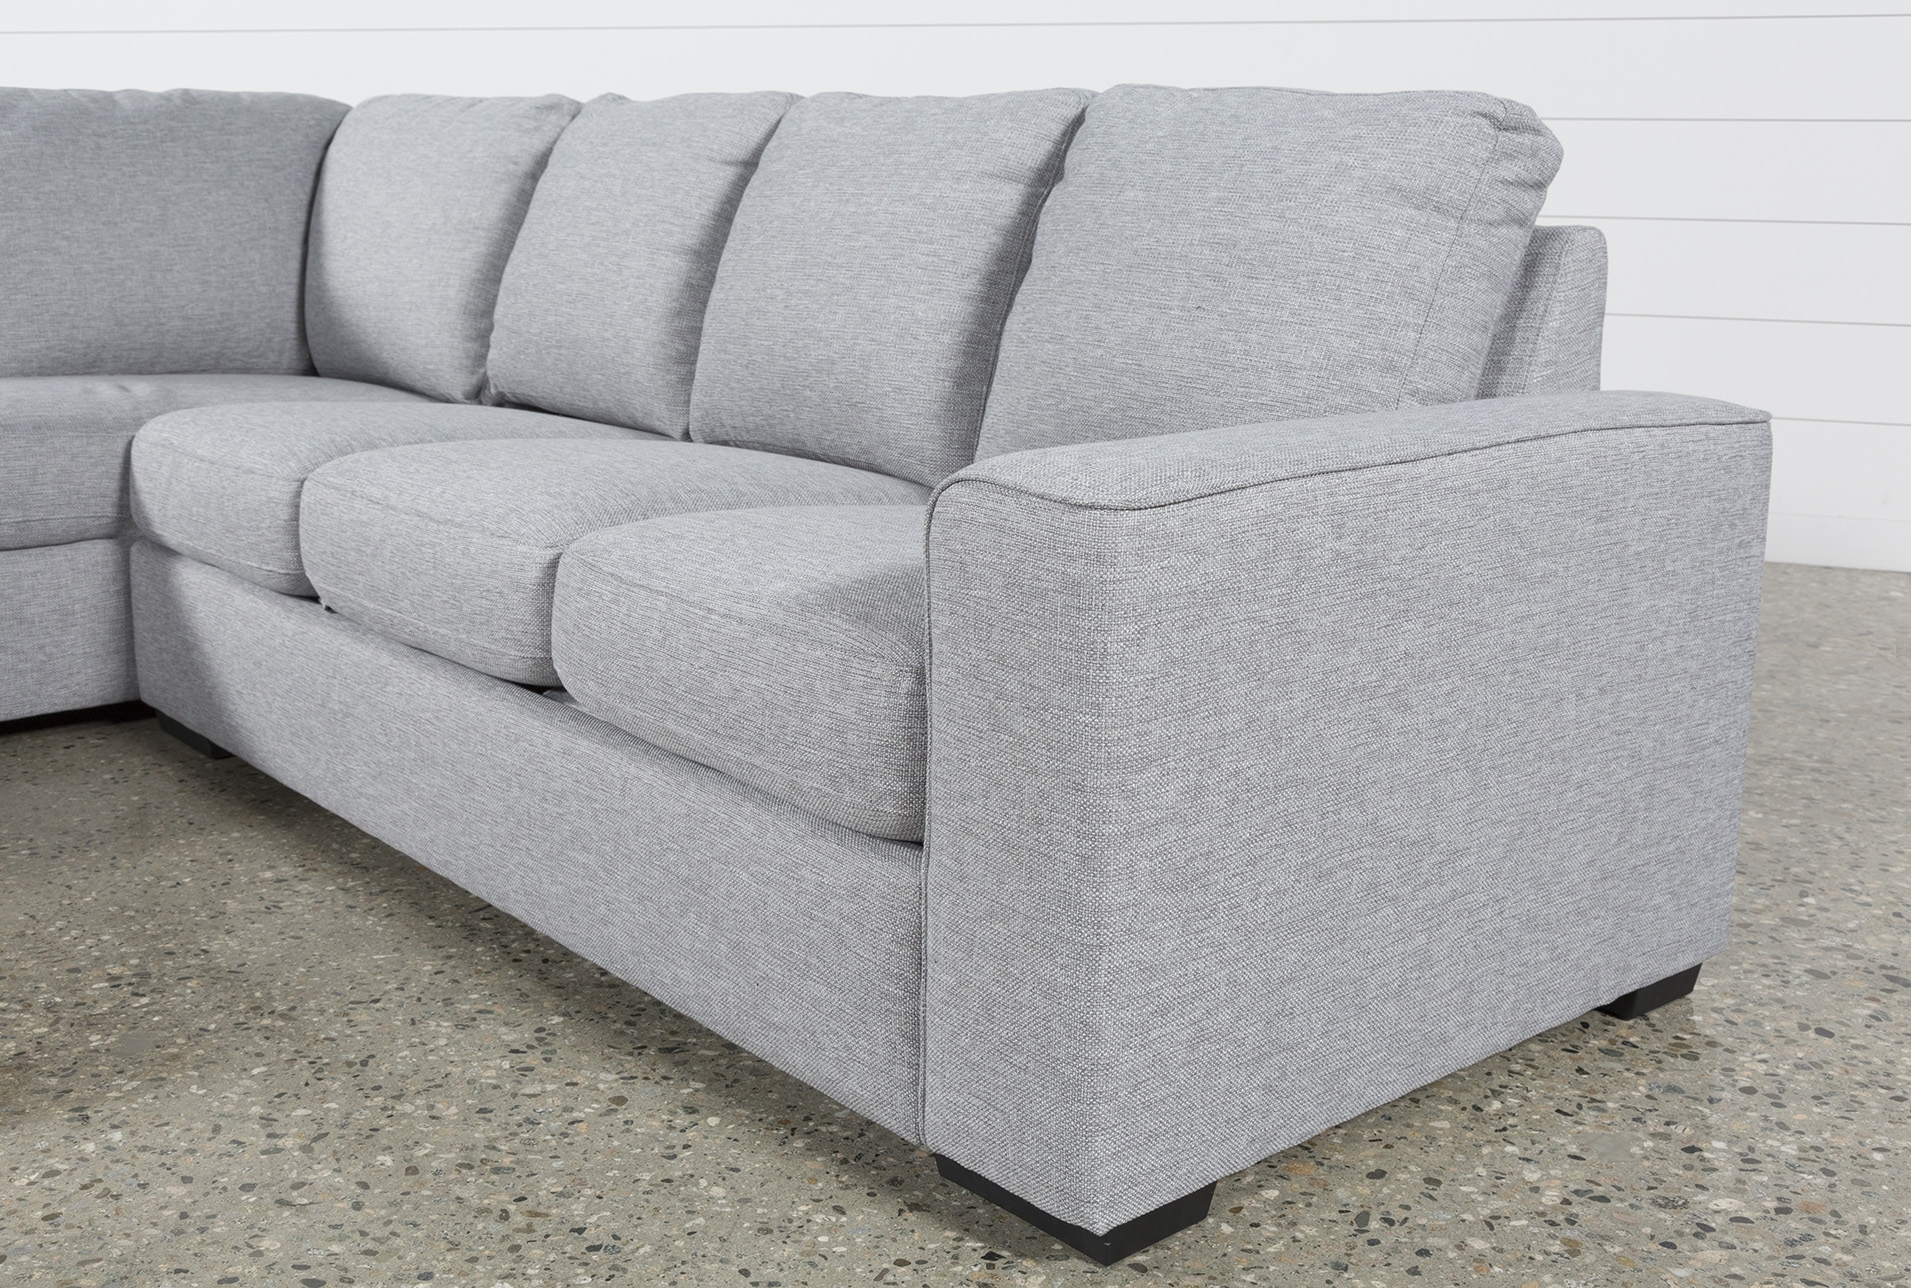 Lucy Grey 2 Piece Sectional W/laf Chaise | Products Within Lucy Dark Grey 2 Piece Sleeper Sectionals With Raf Chaise (Image 14 of 25)